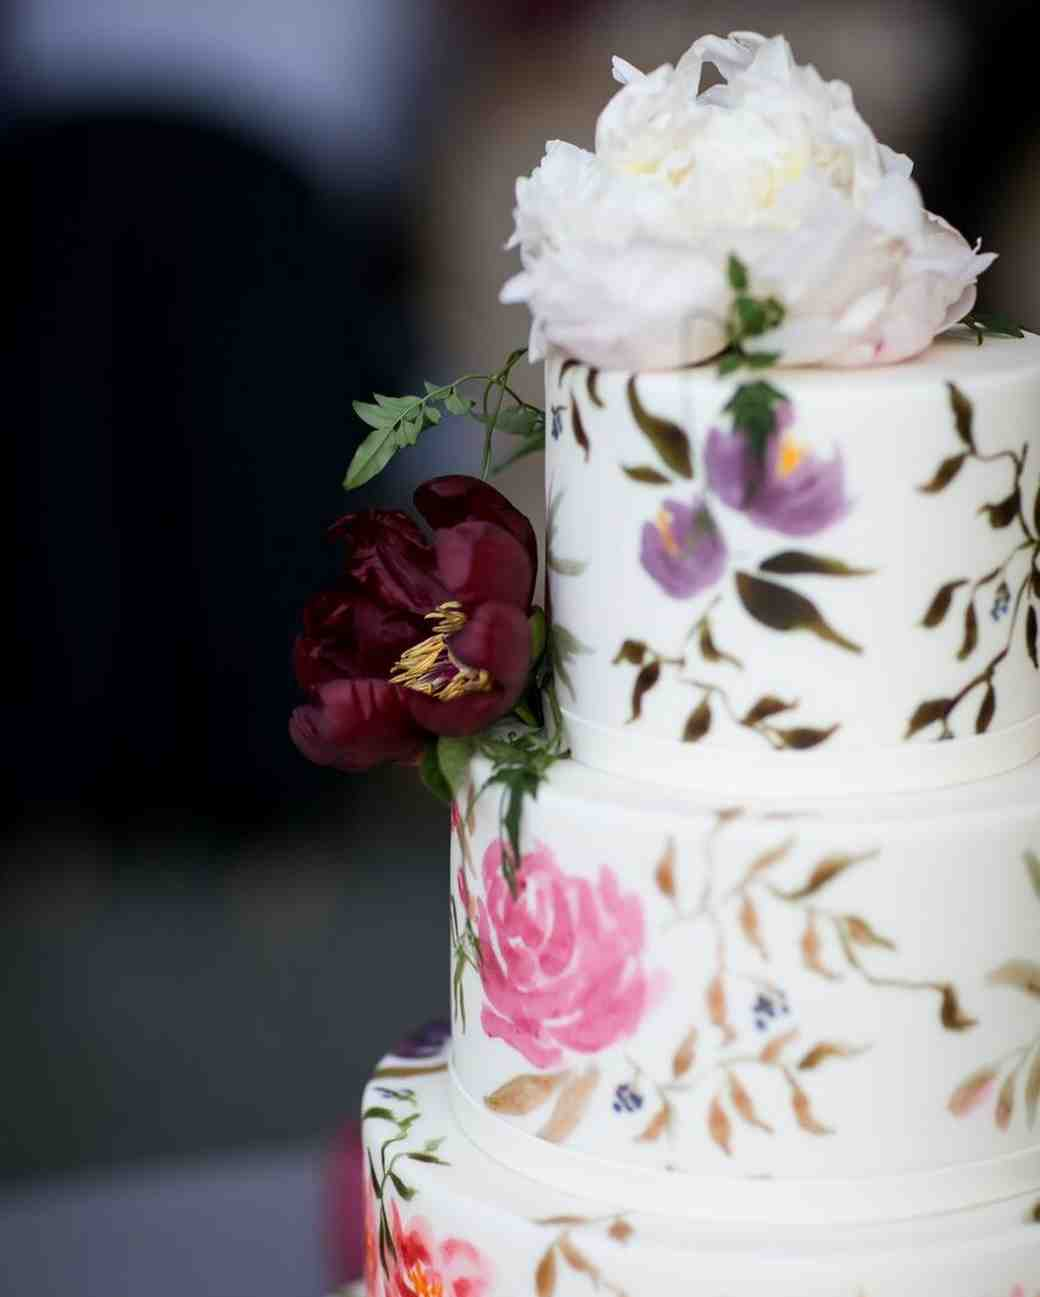 Black Fruit Cake Wedding